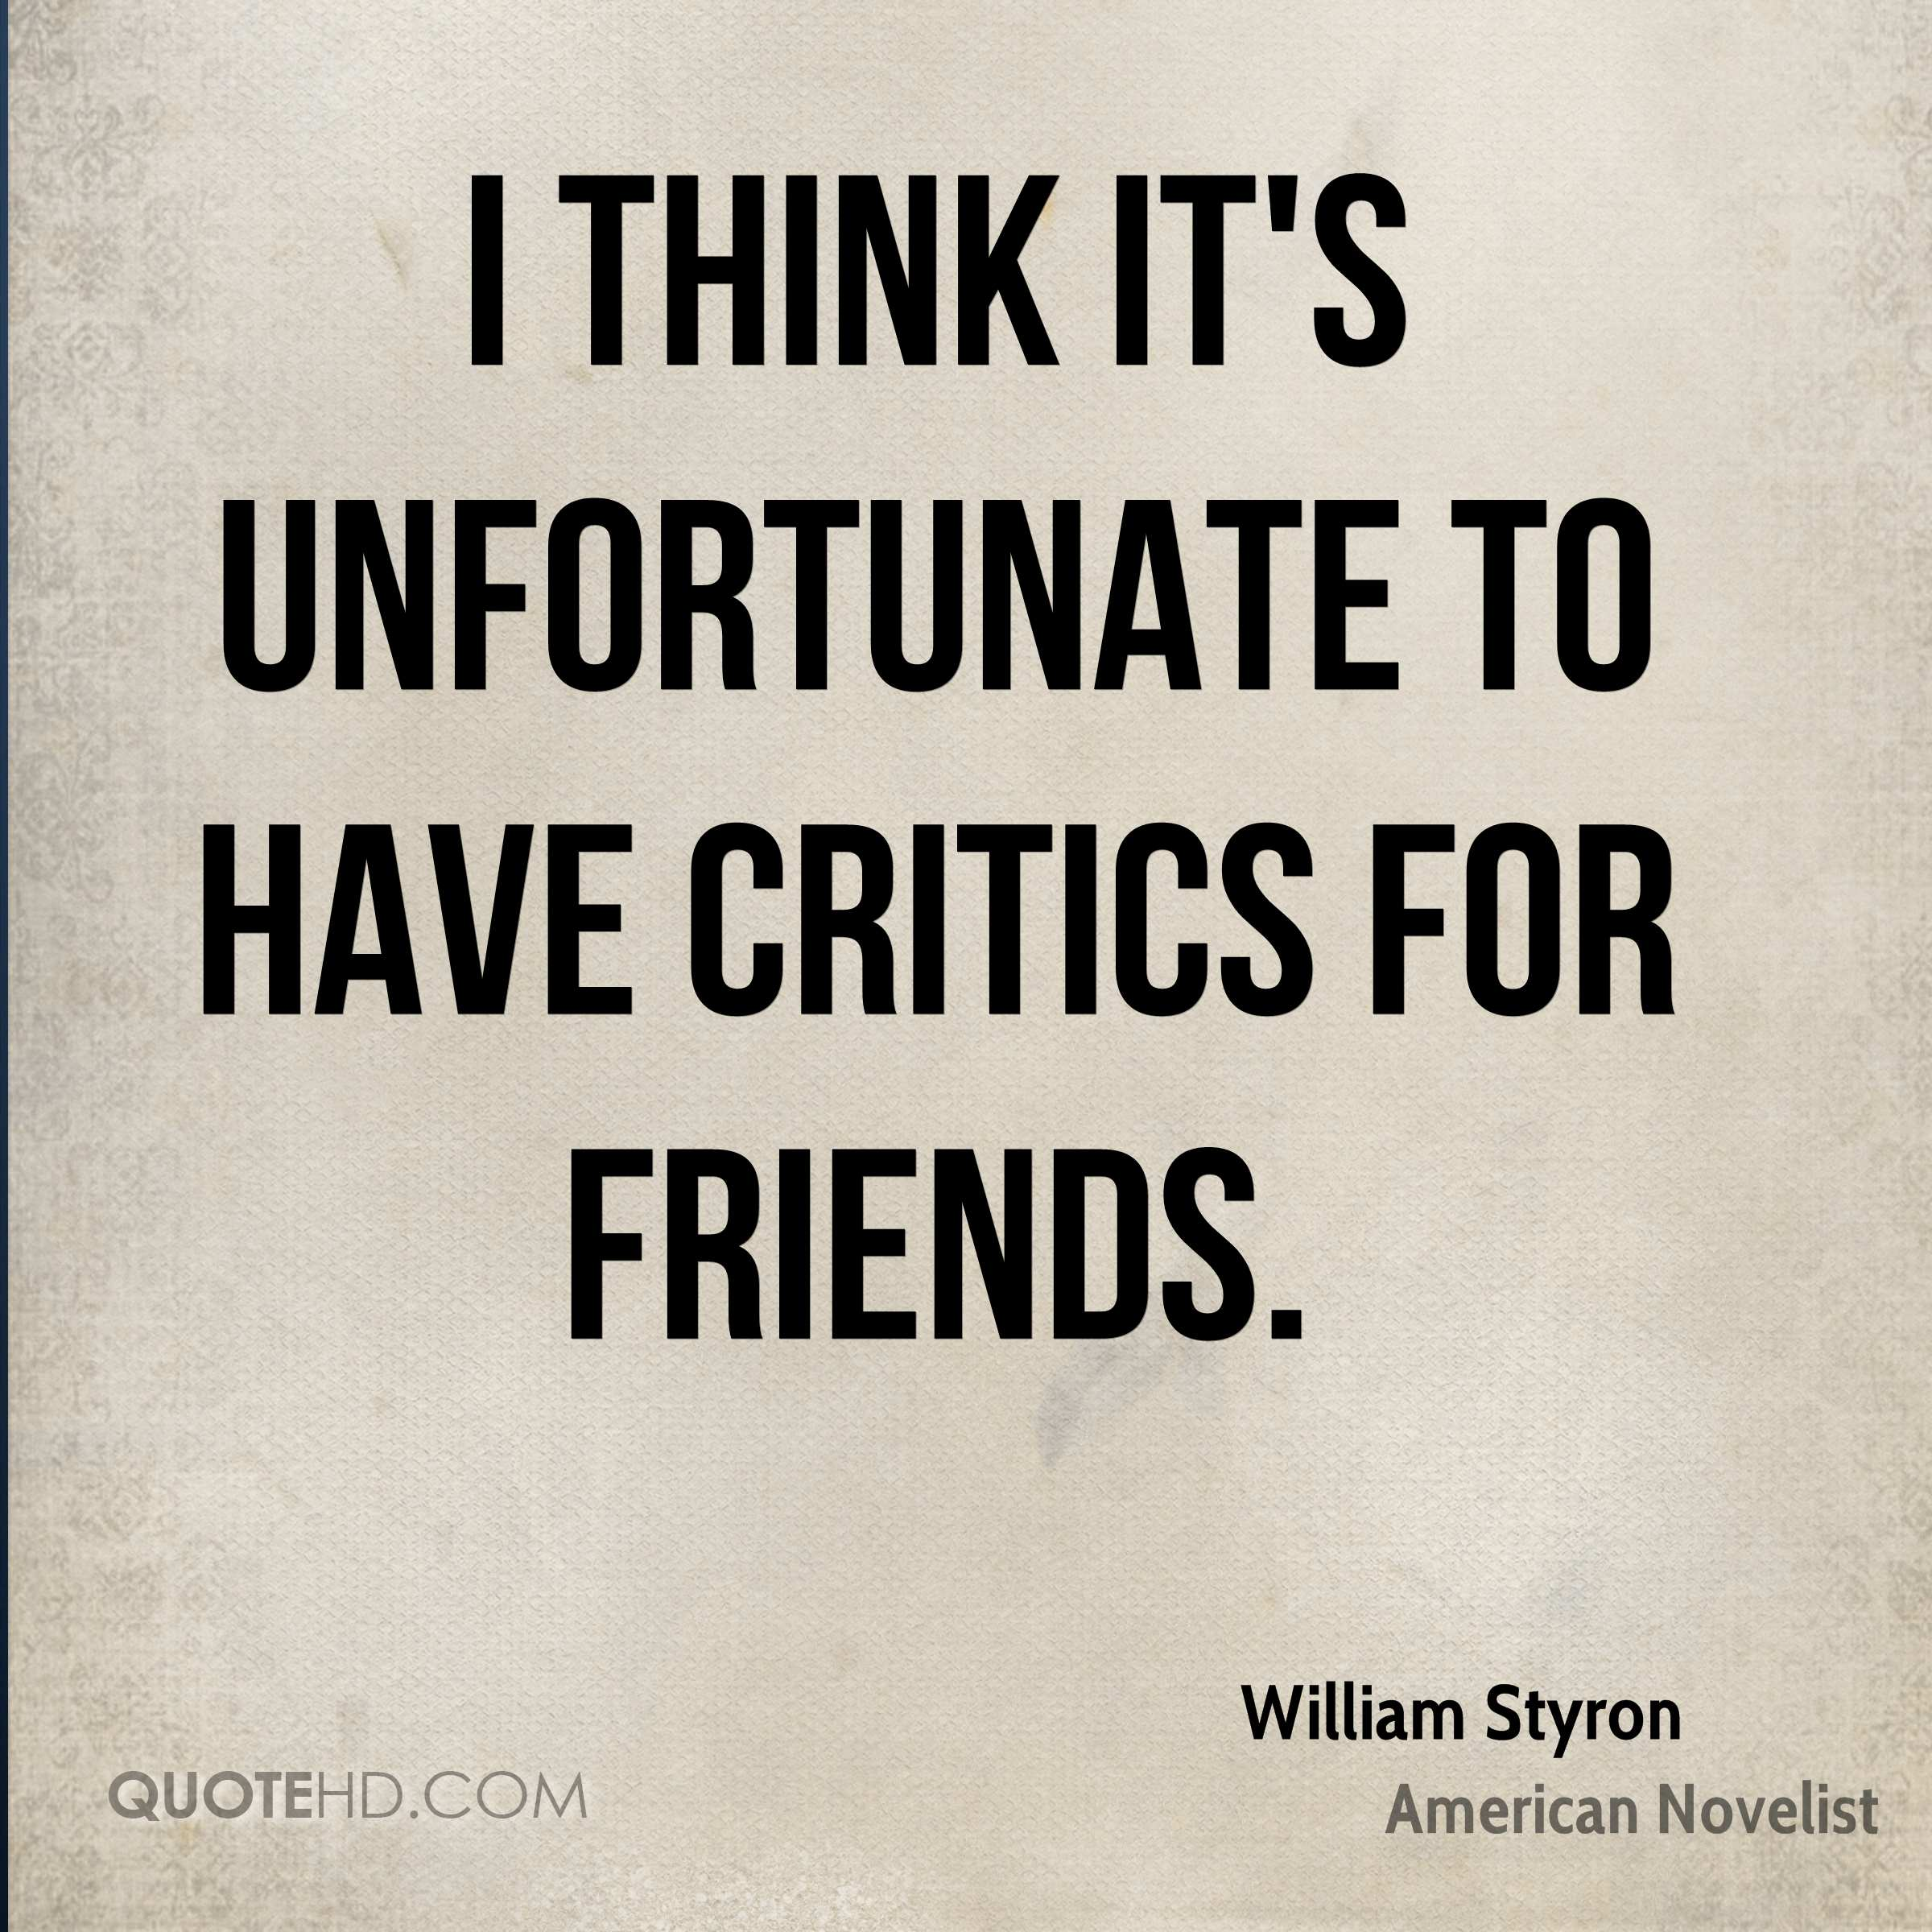 I think it's unfortunate to have critics for friends.